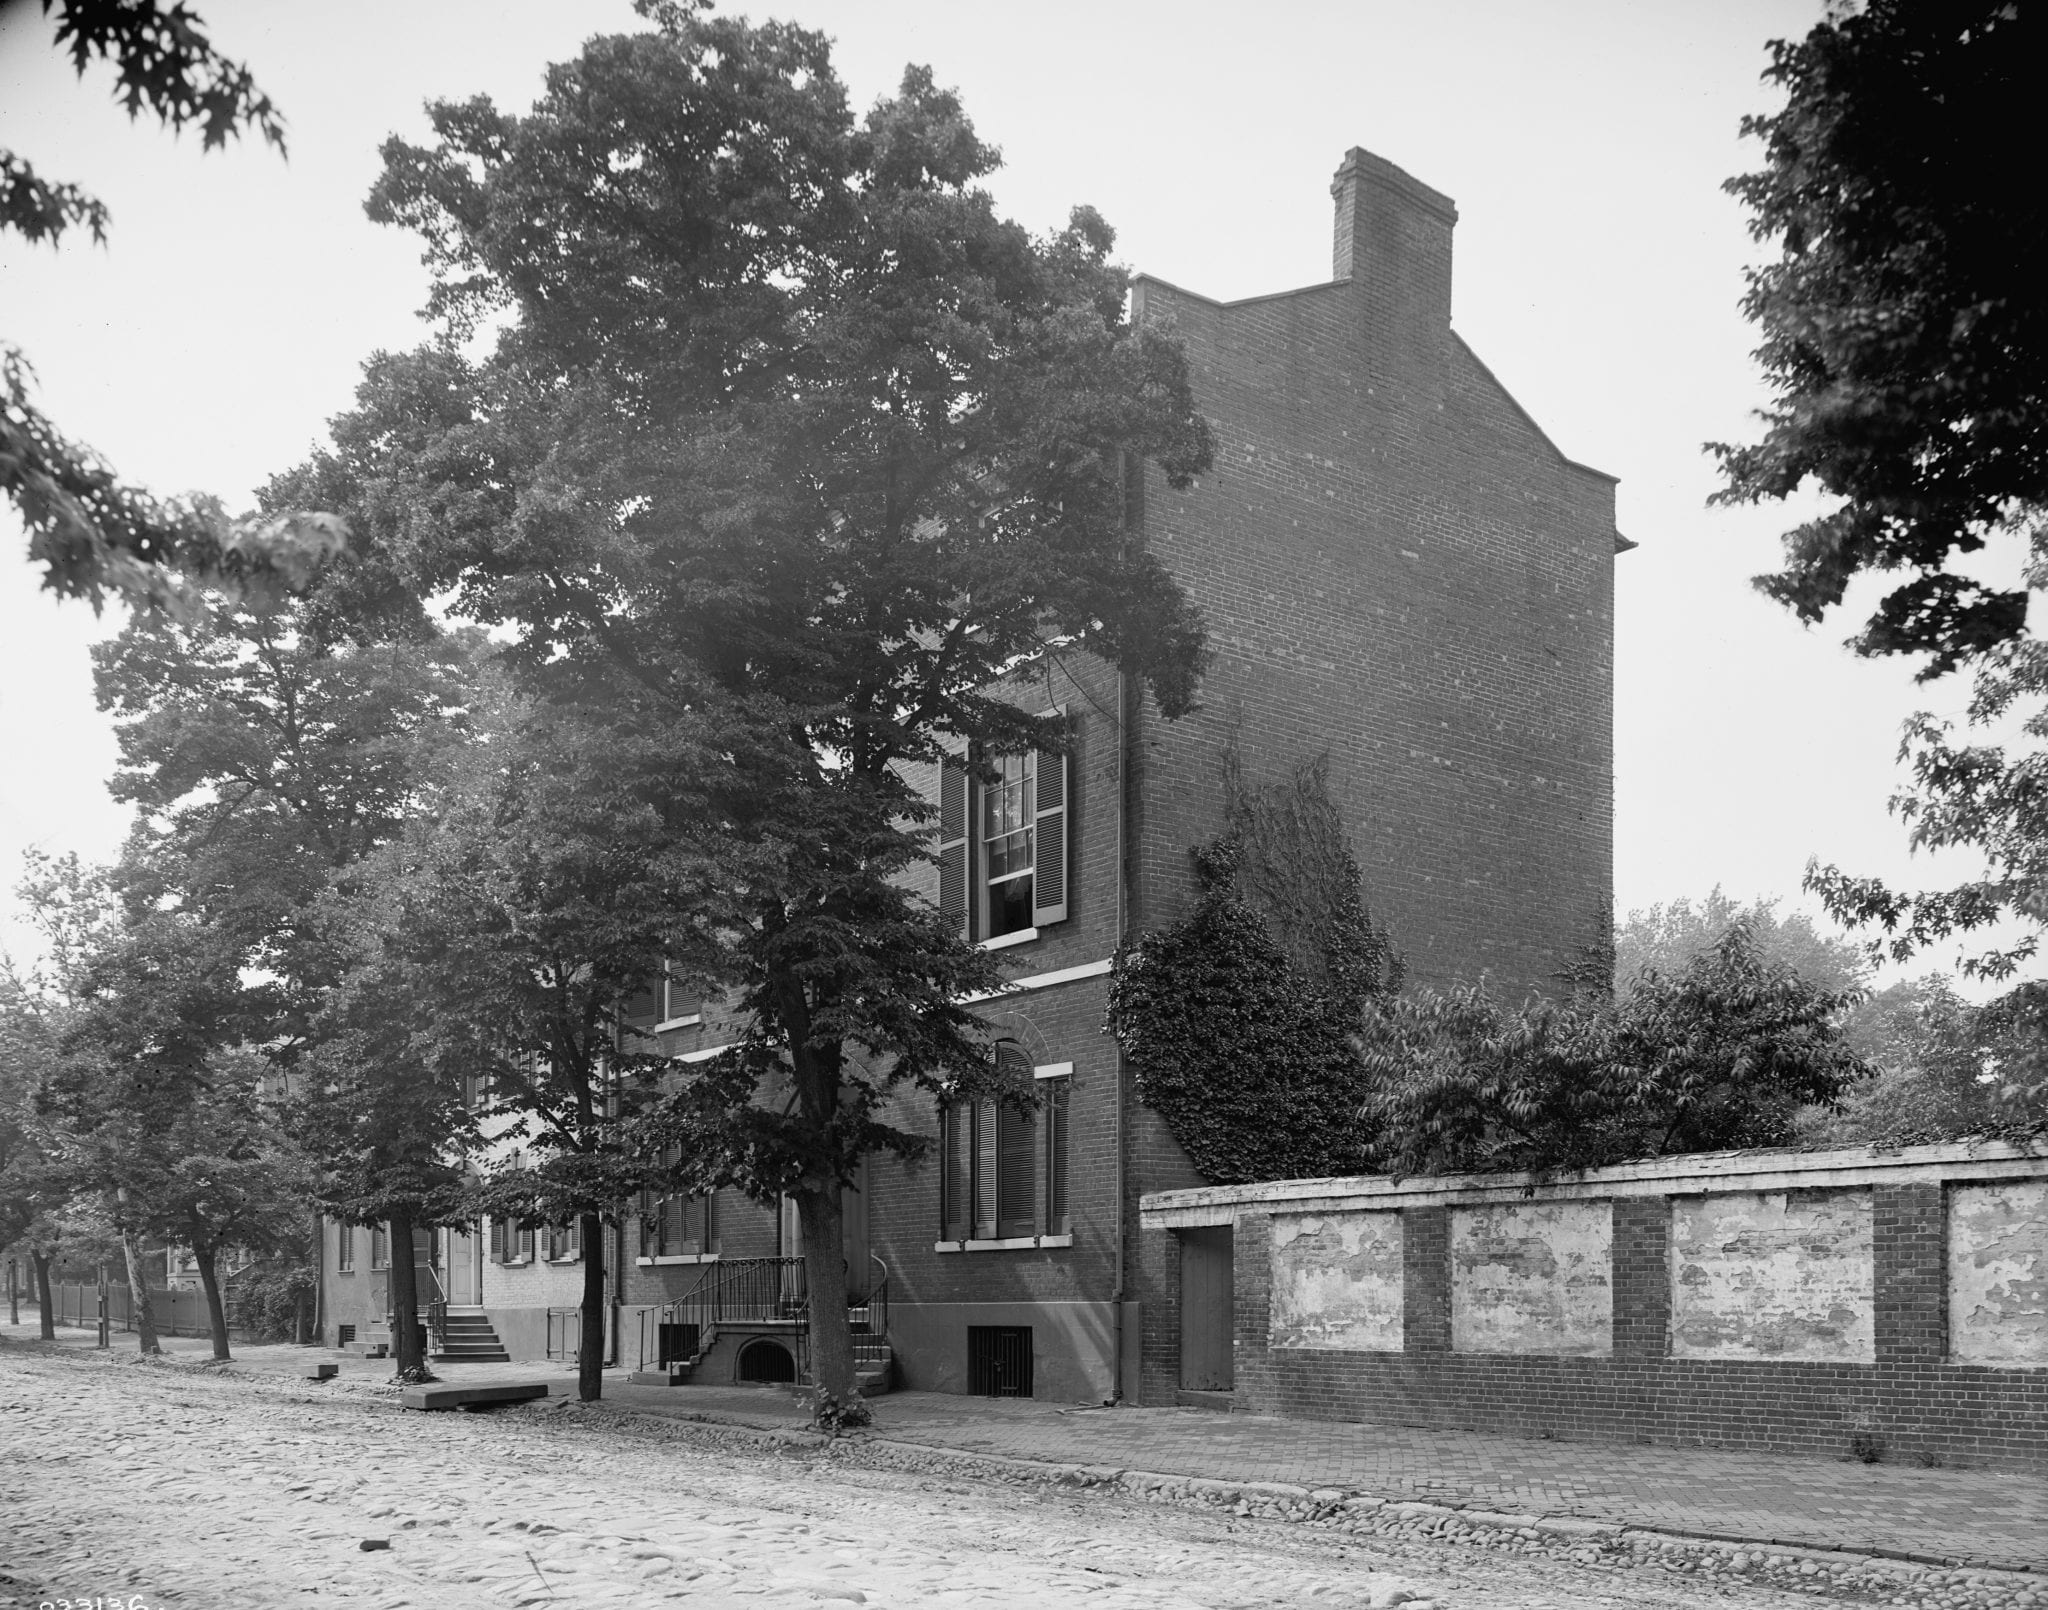 Then and Now View of Lord Fairfax House in Alexandria